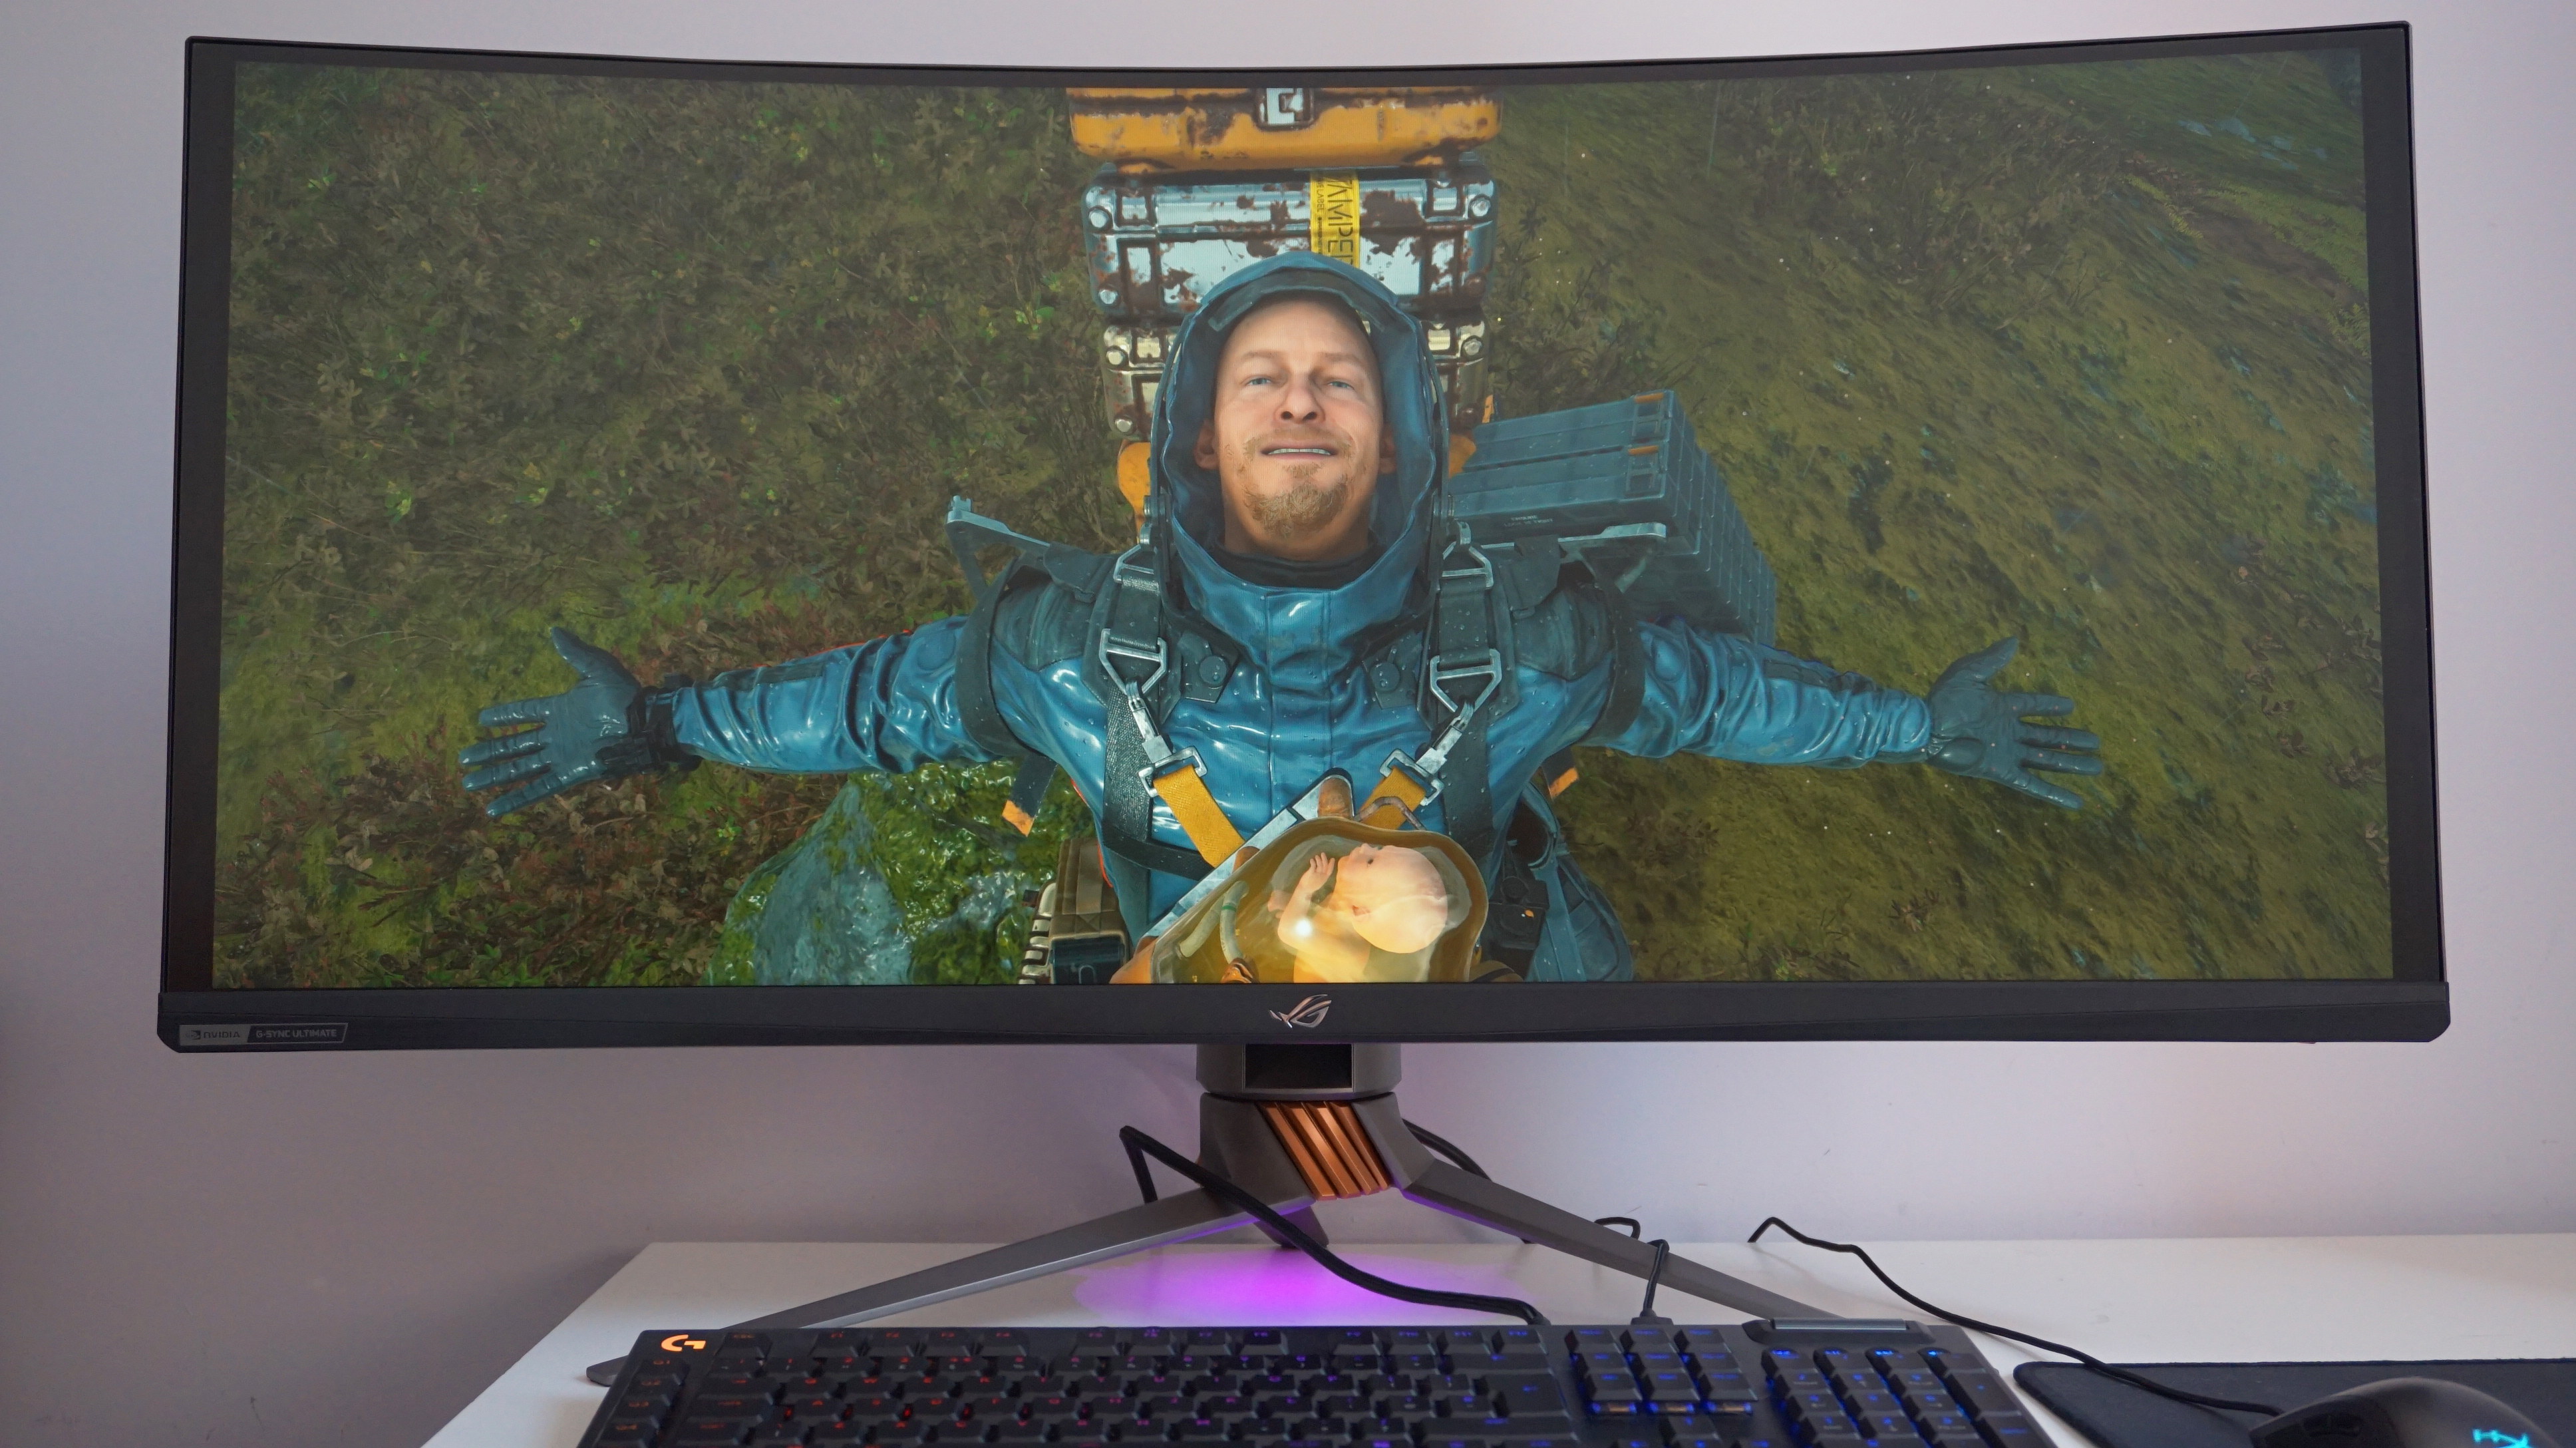 An image of Death Stranding on an ultrawide gaming monitor.